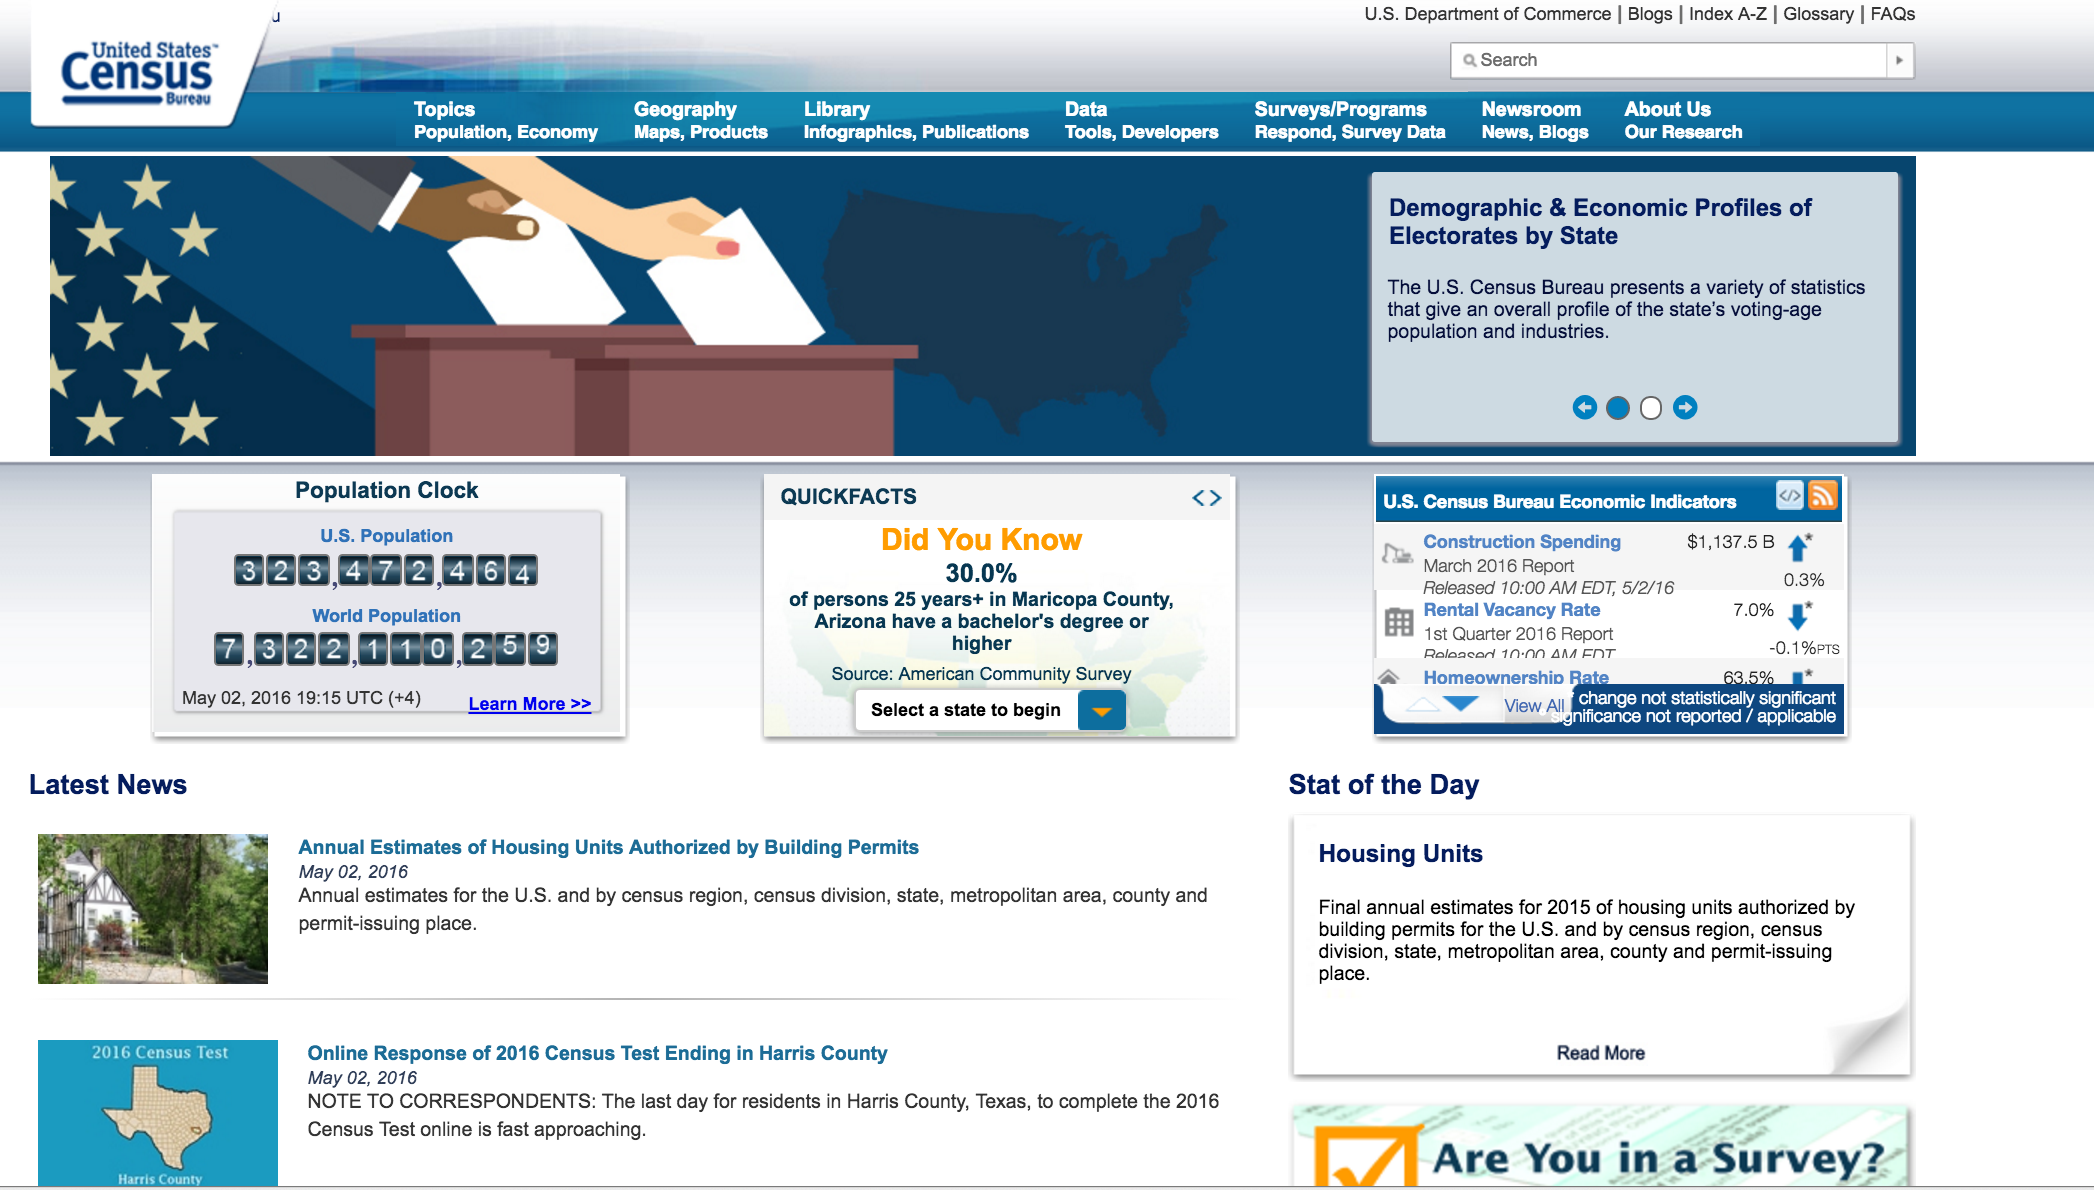 Census should initiate a project to redesign the Census.gov homepage (current homepage pictured above)